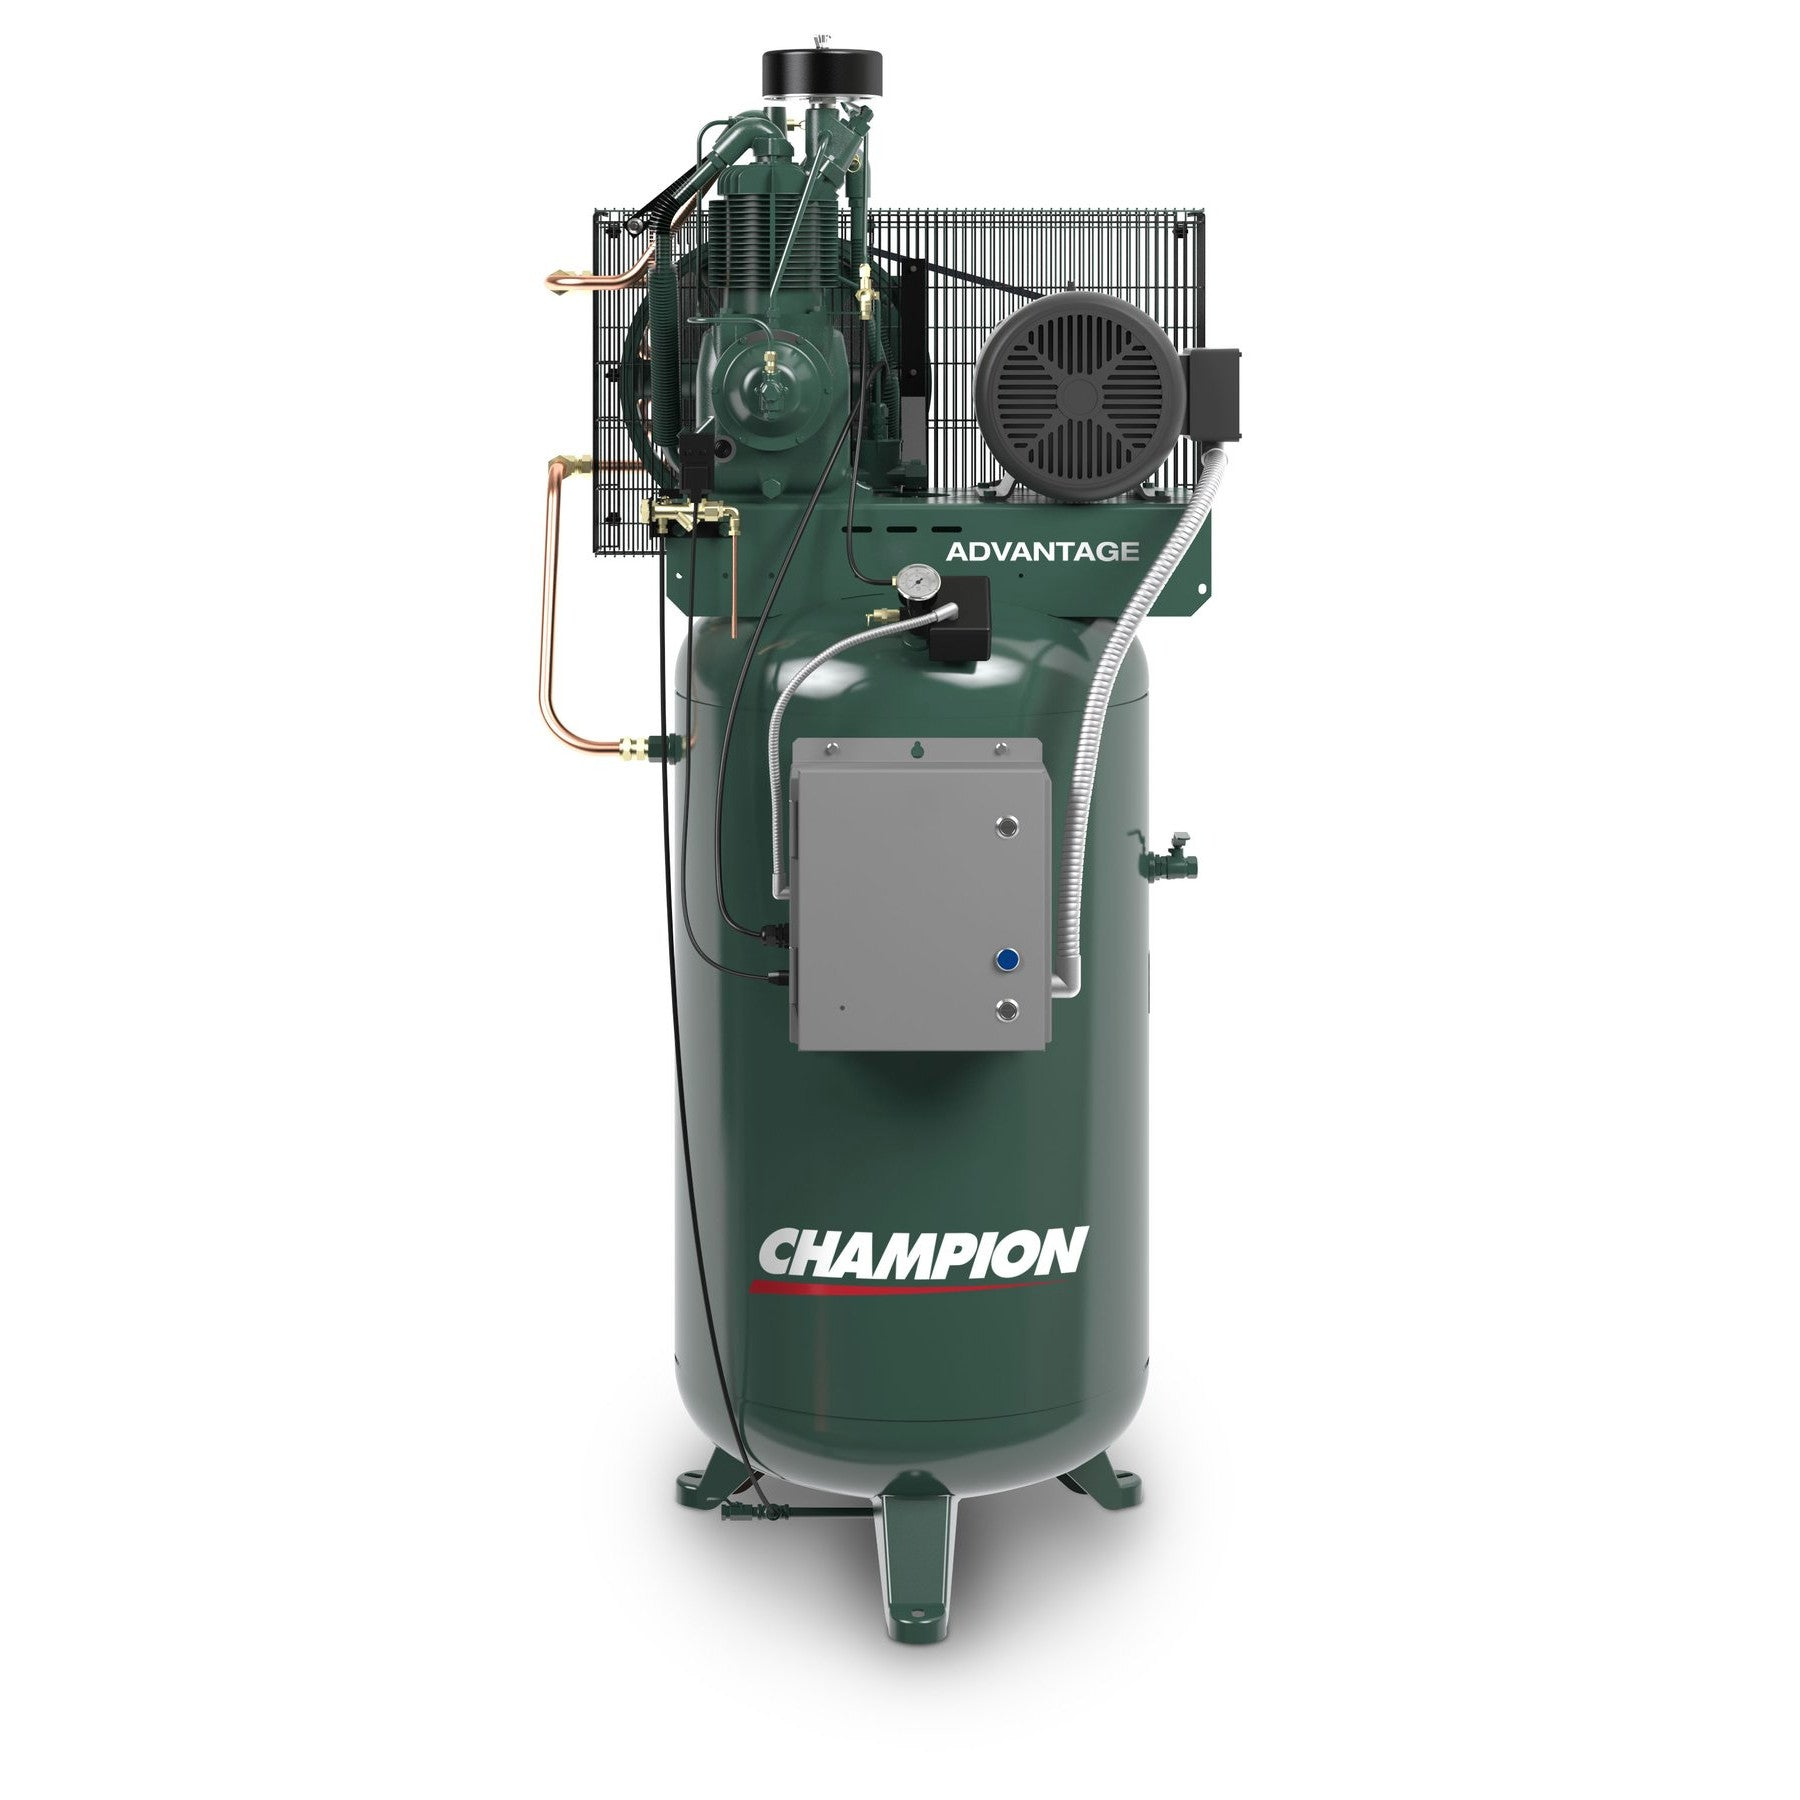 Champion VR5-8 Air Compressor Fully Equipped (230V, 1PH, 5HP, 80GL)